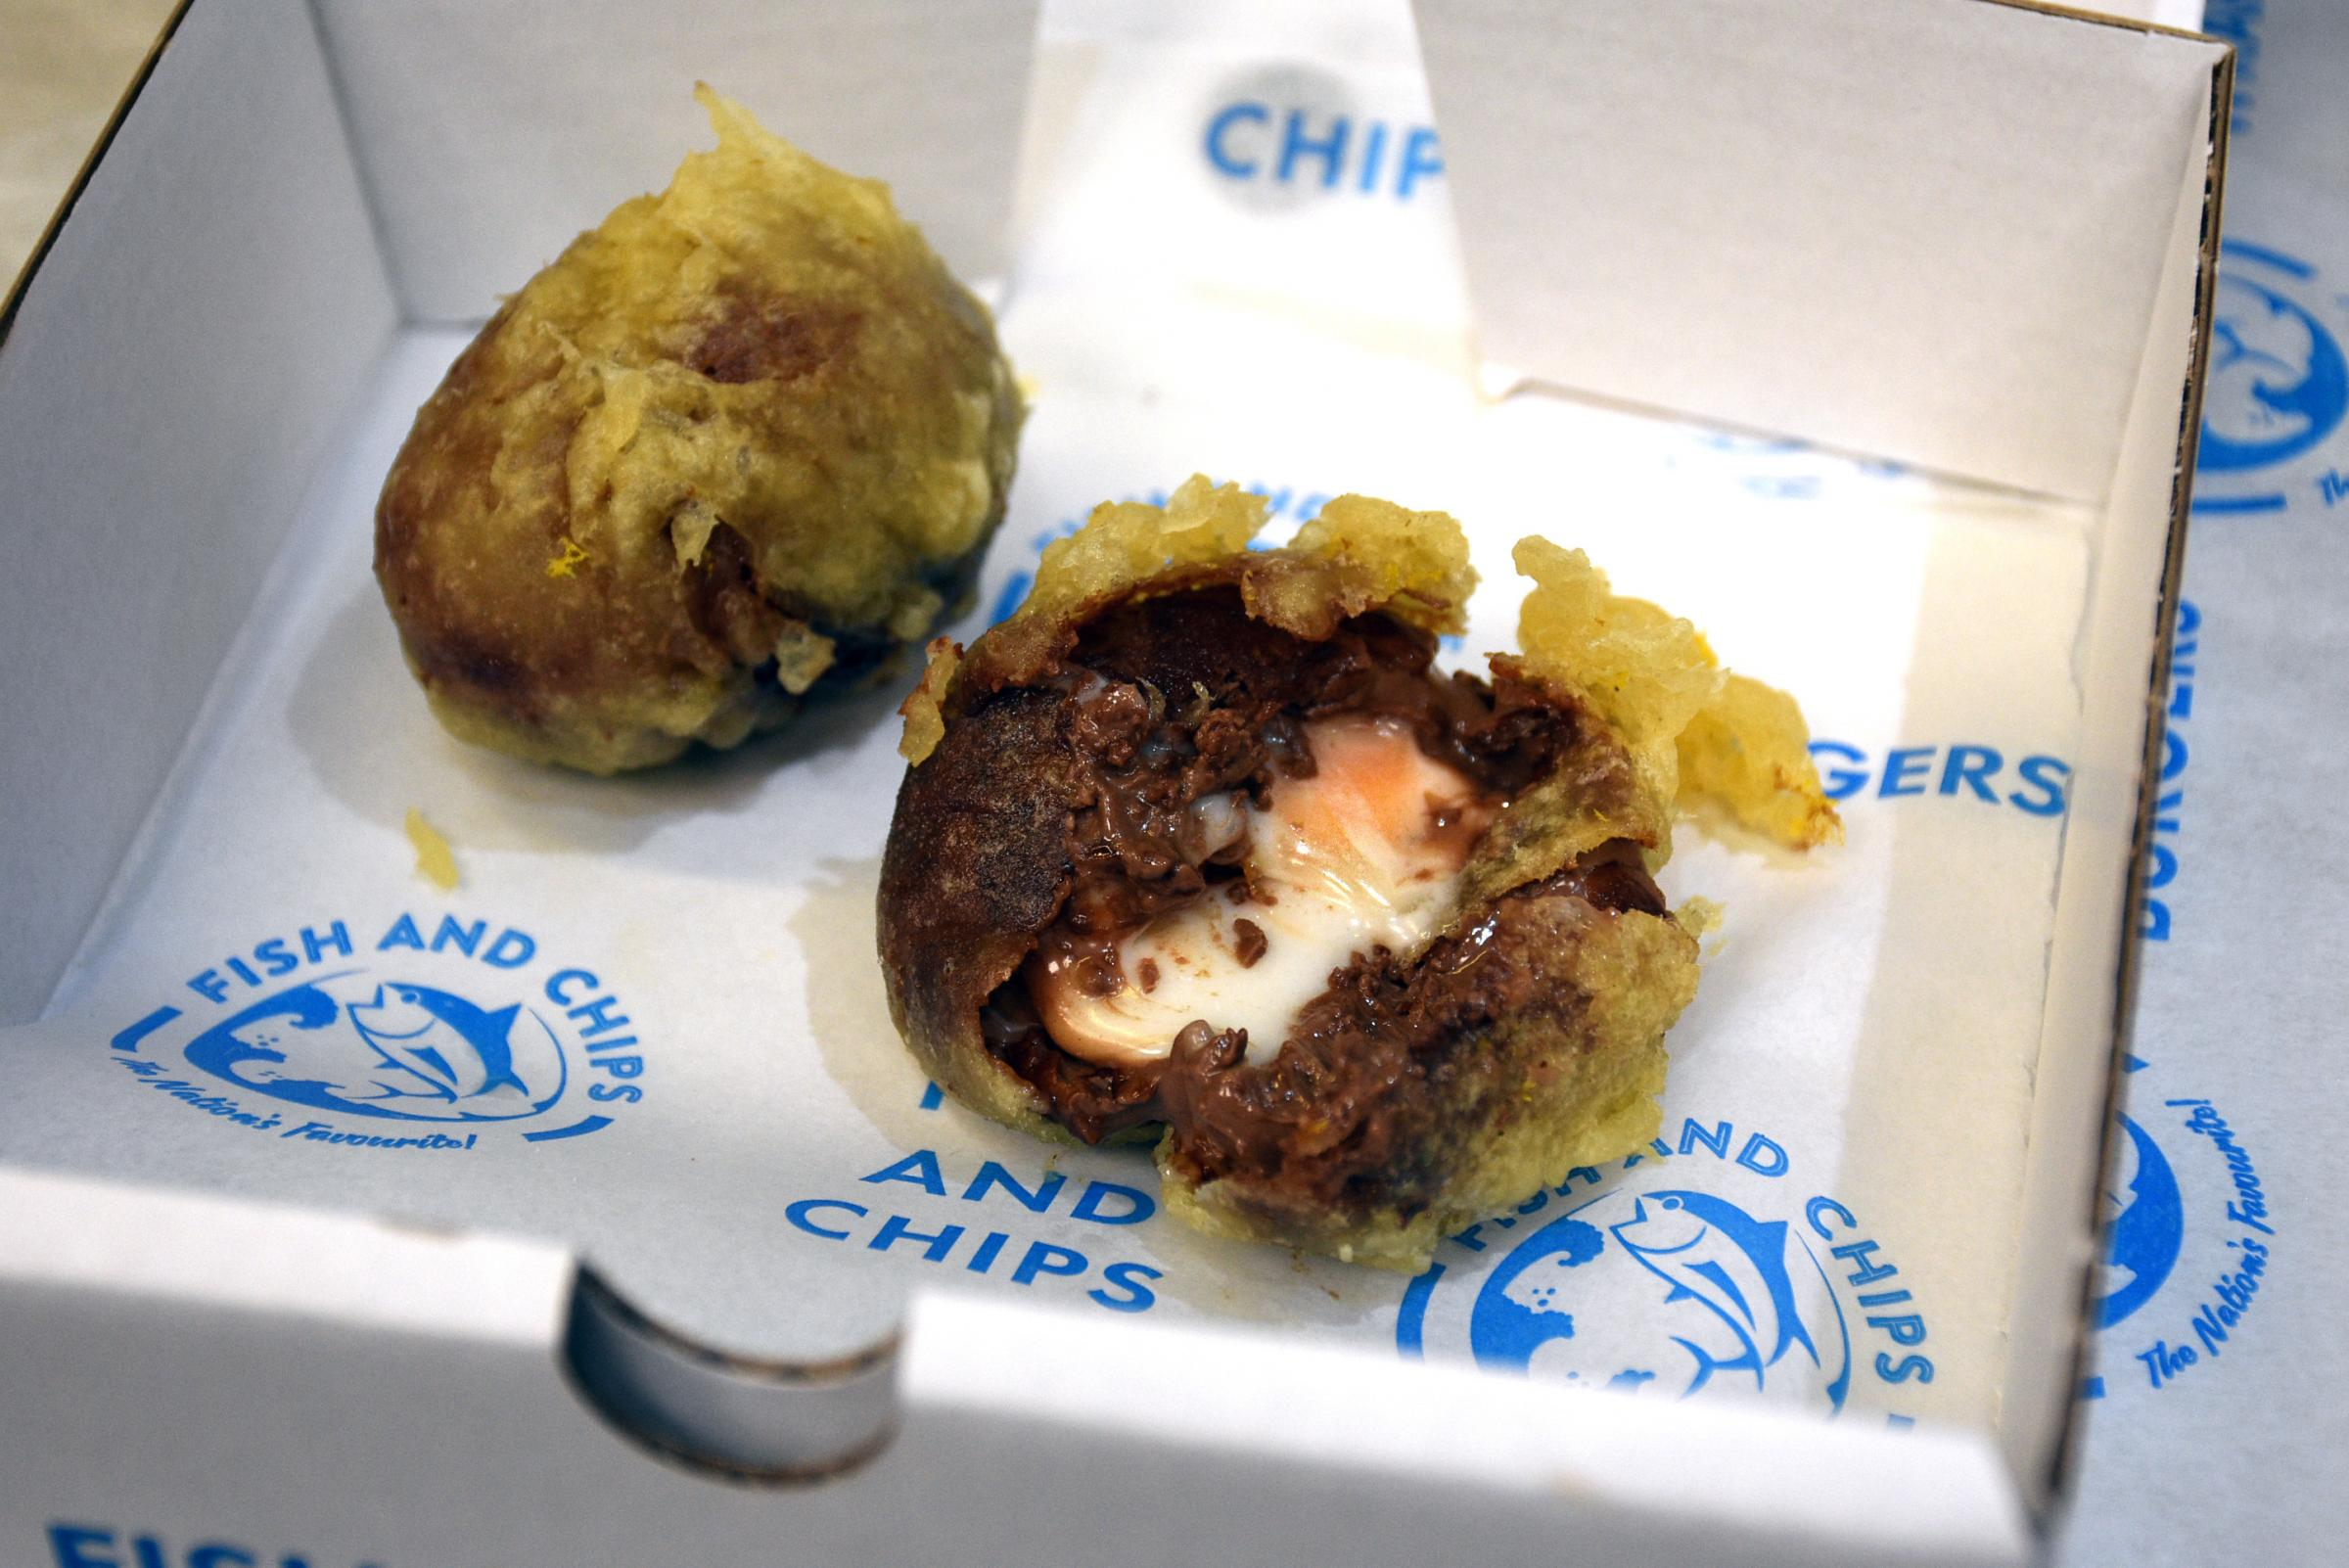 The battered Creme Eggs being served up by Norton Fisheries